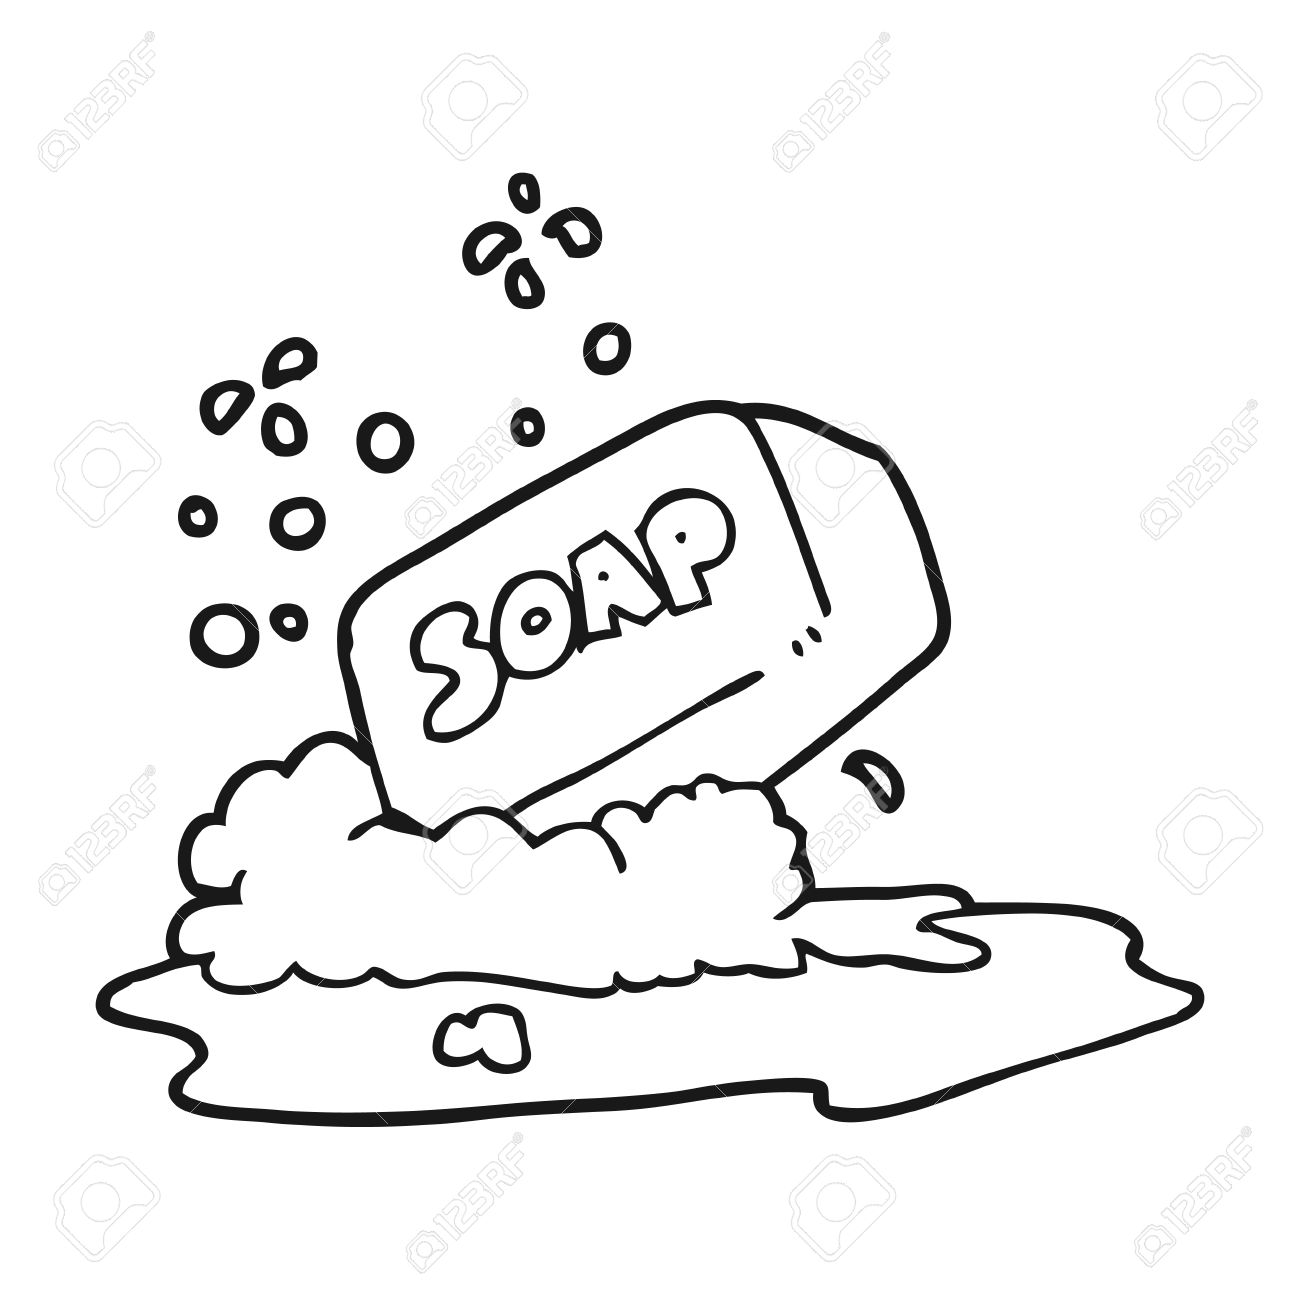 1300x1300 Freehand Drawn Black And White Cartoon Bar Of Soap Royalty Free